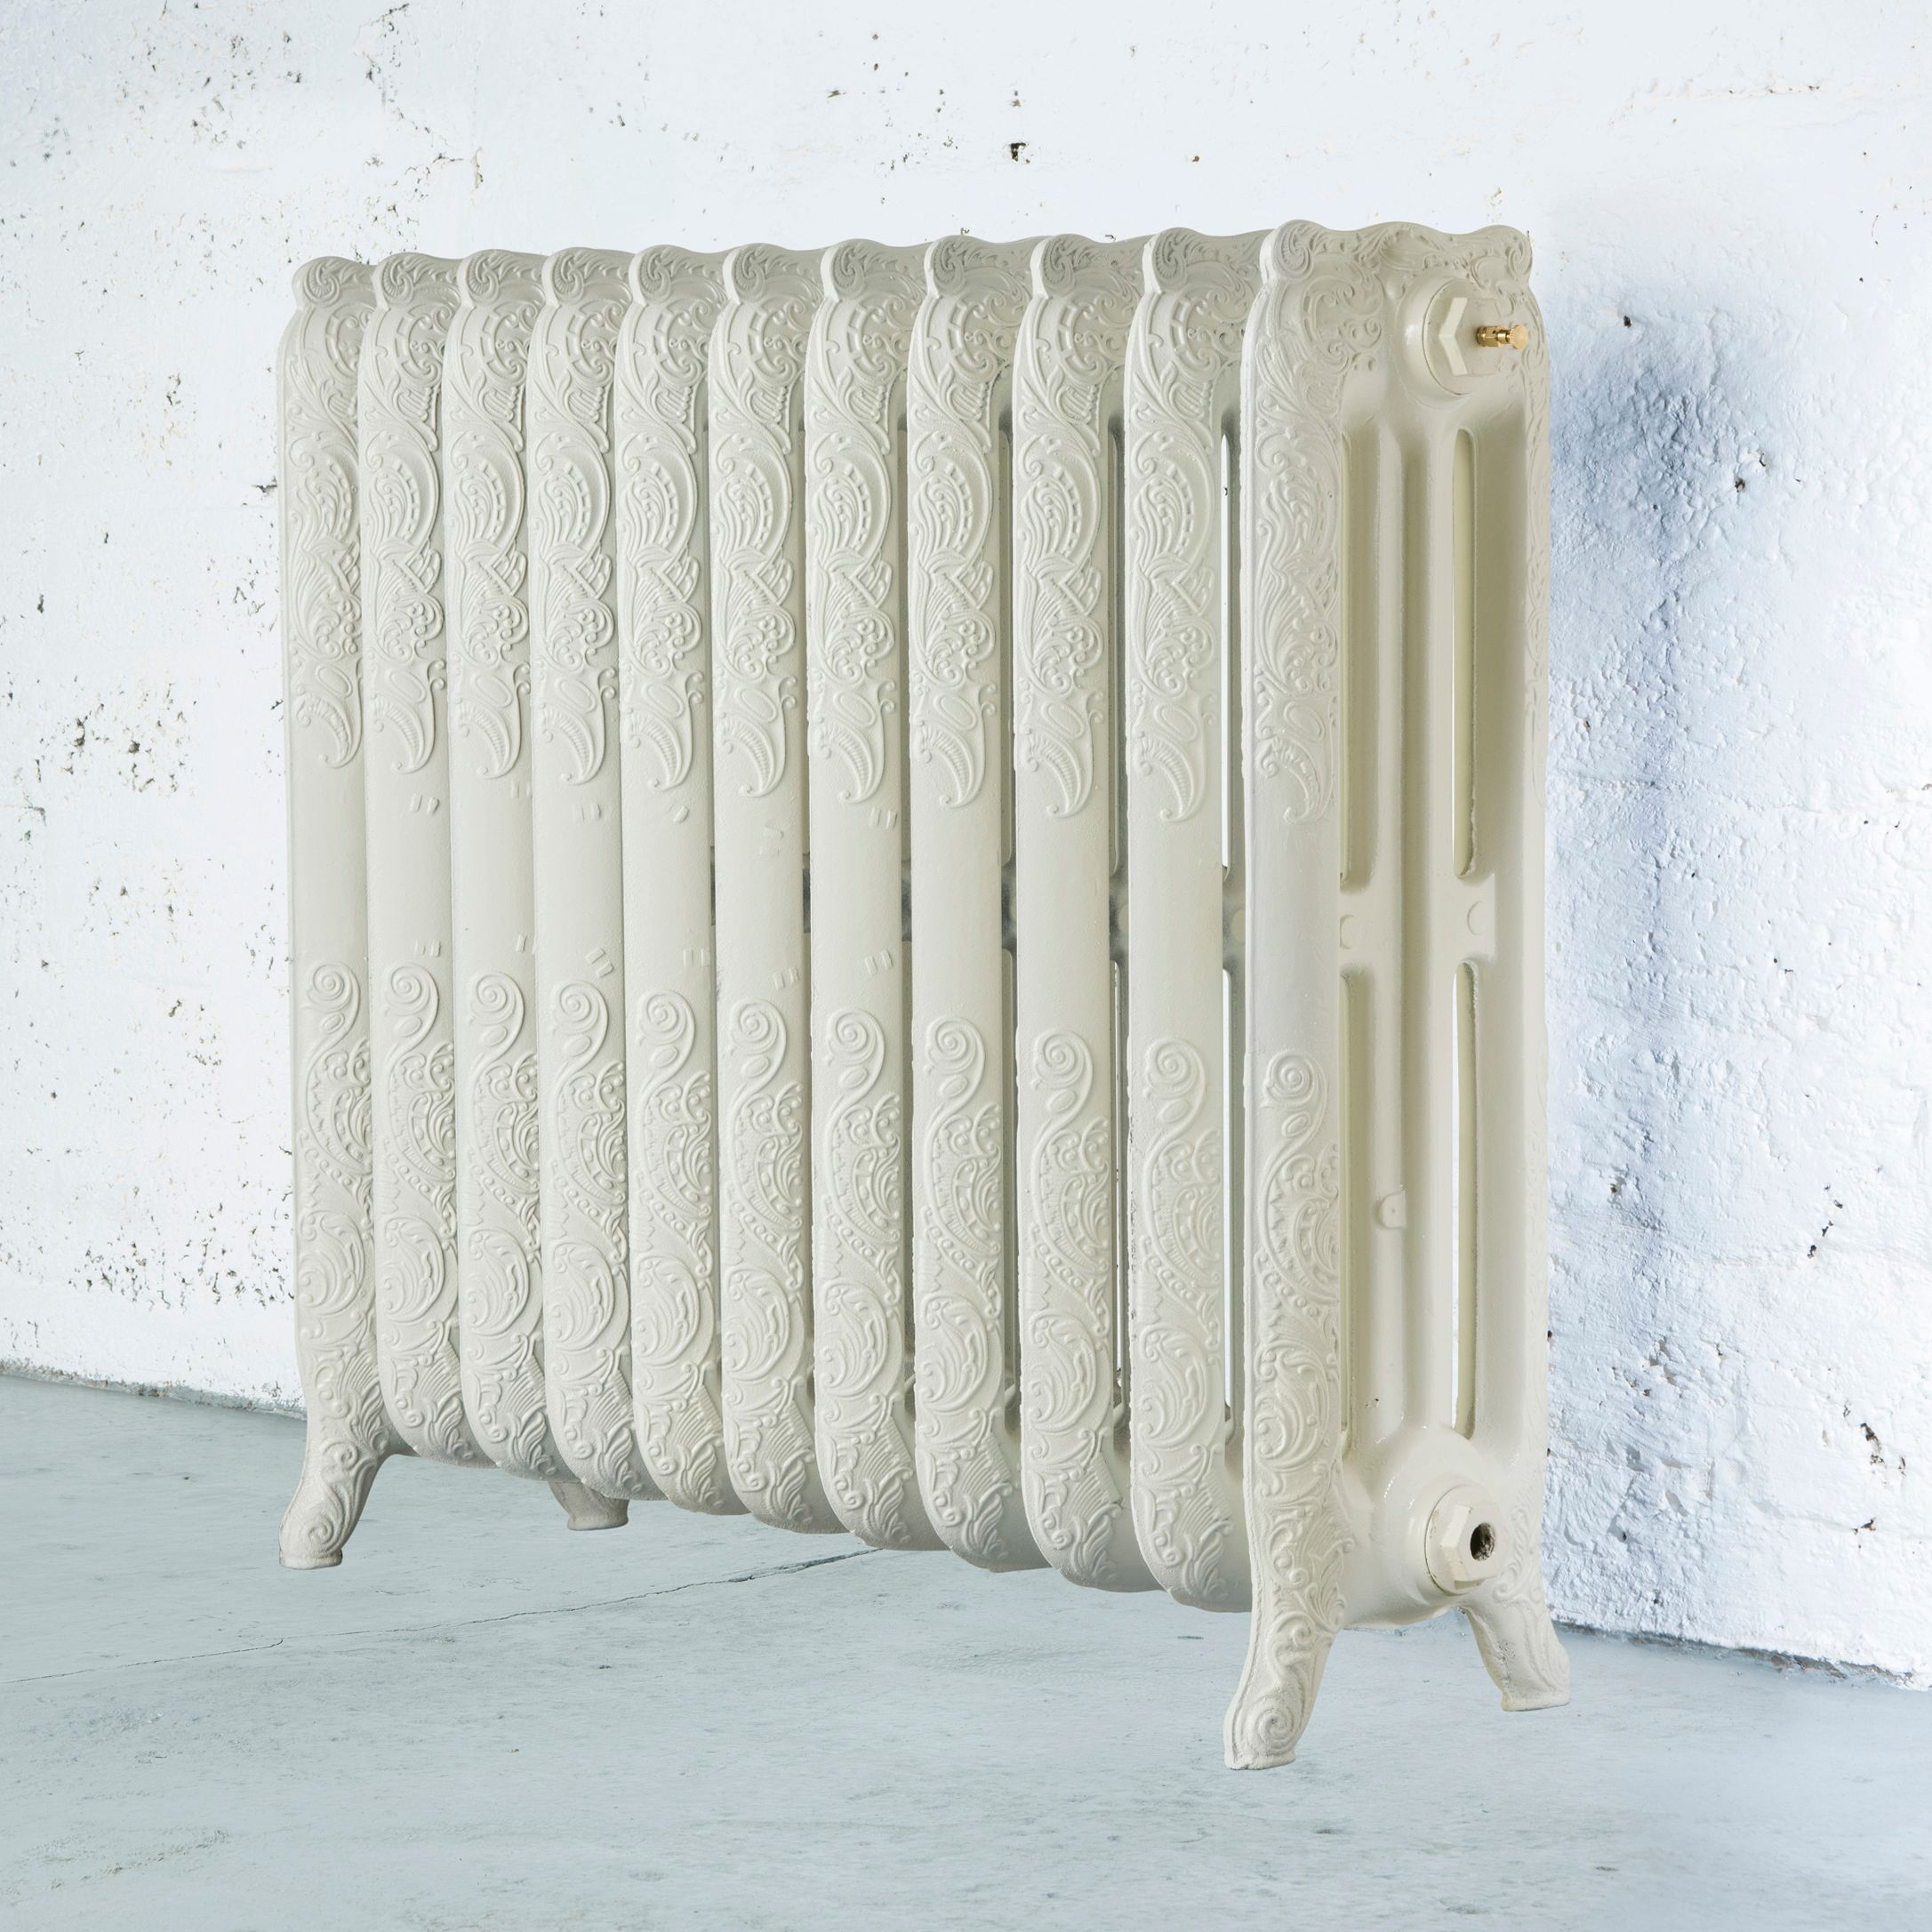 Arroll Montmartre 3 Column Radiator, Cream (W)914 mm